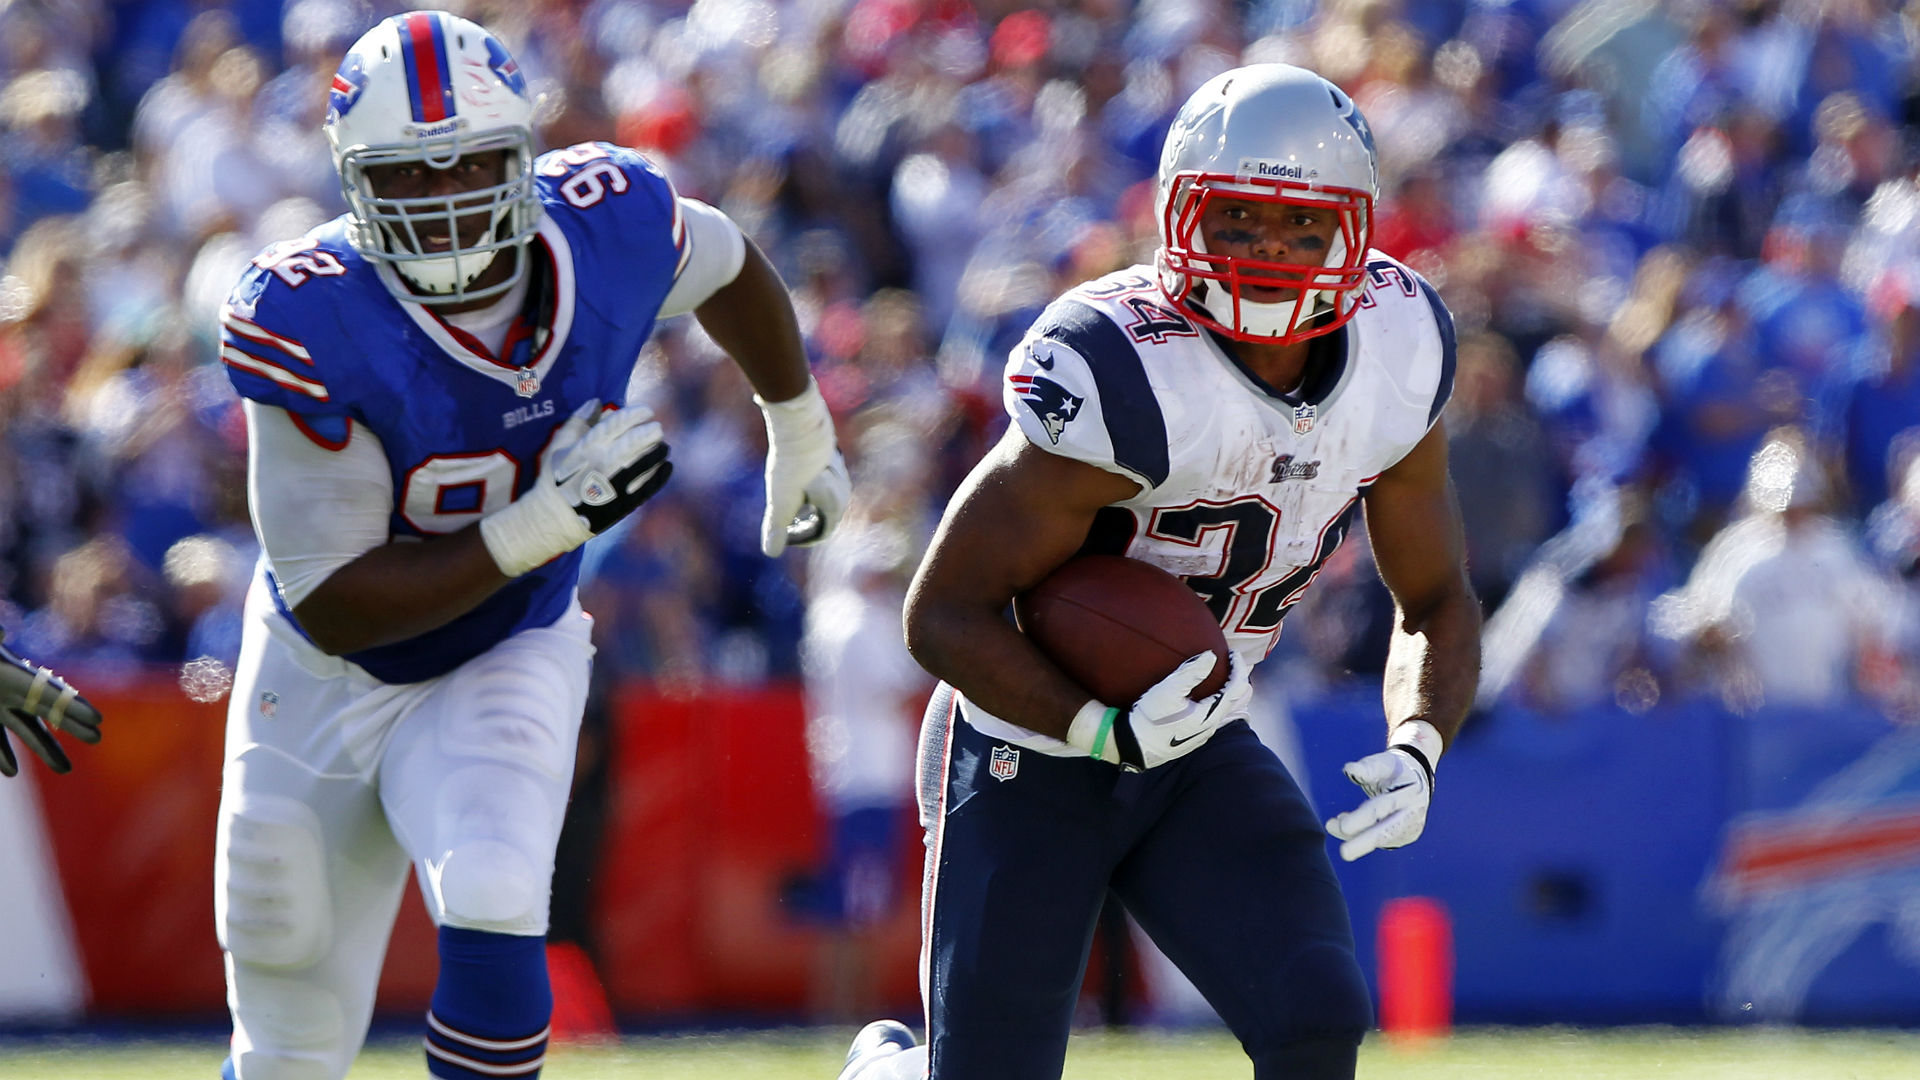 Fantasy Football Weekend Waivers: Vereen, Harvin expected to return